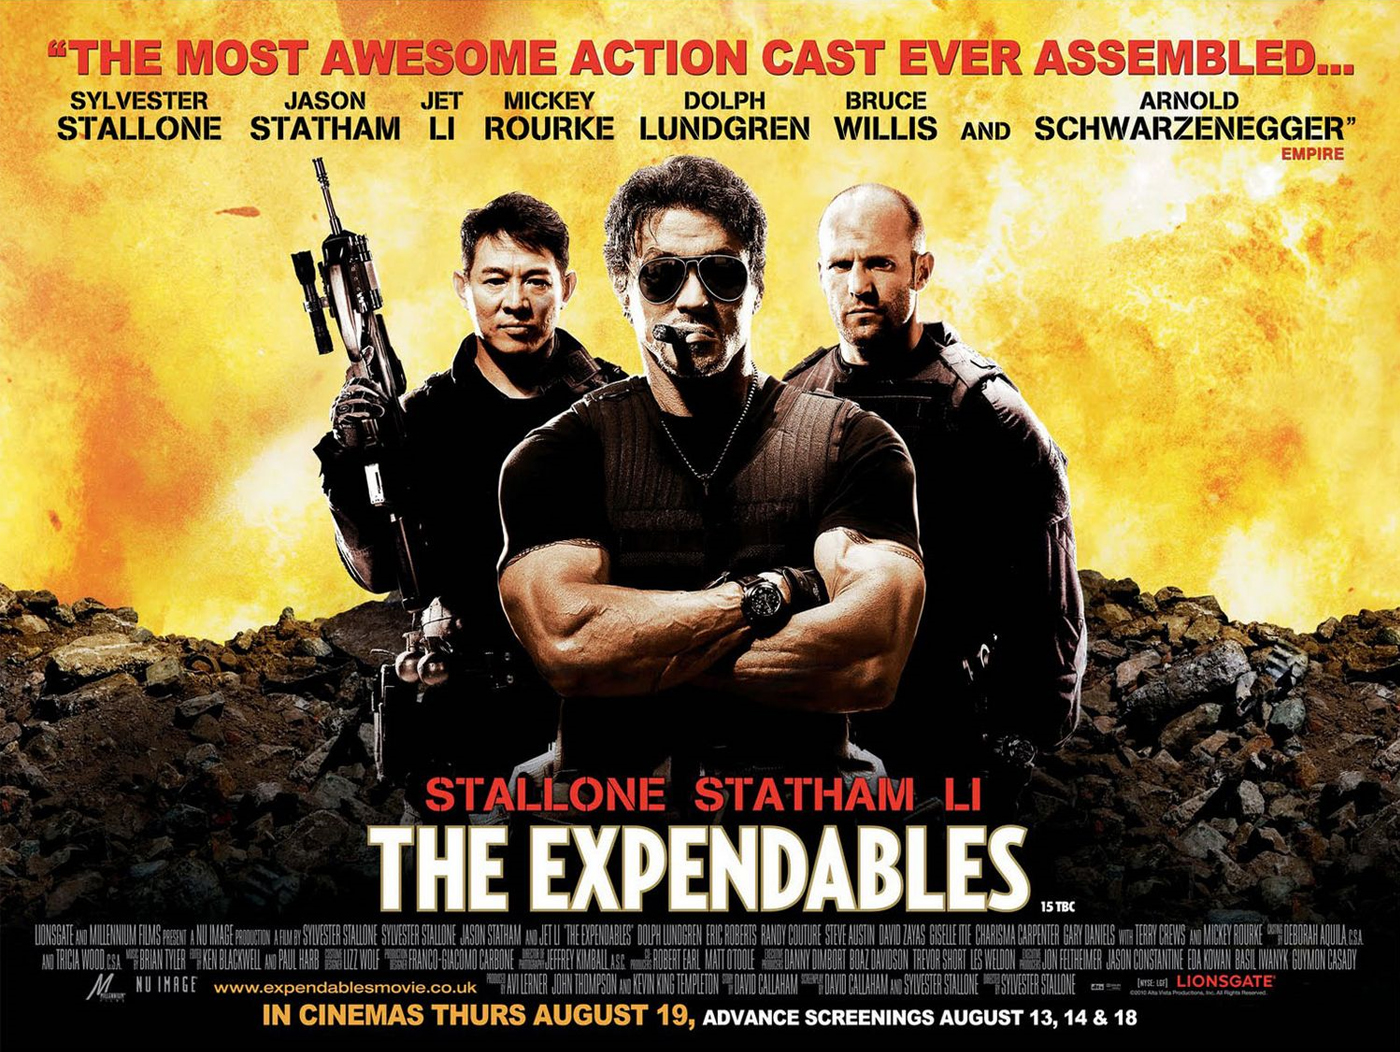 Movies you really enjoyed The-expendables-poster1